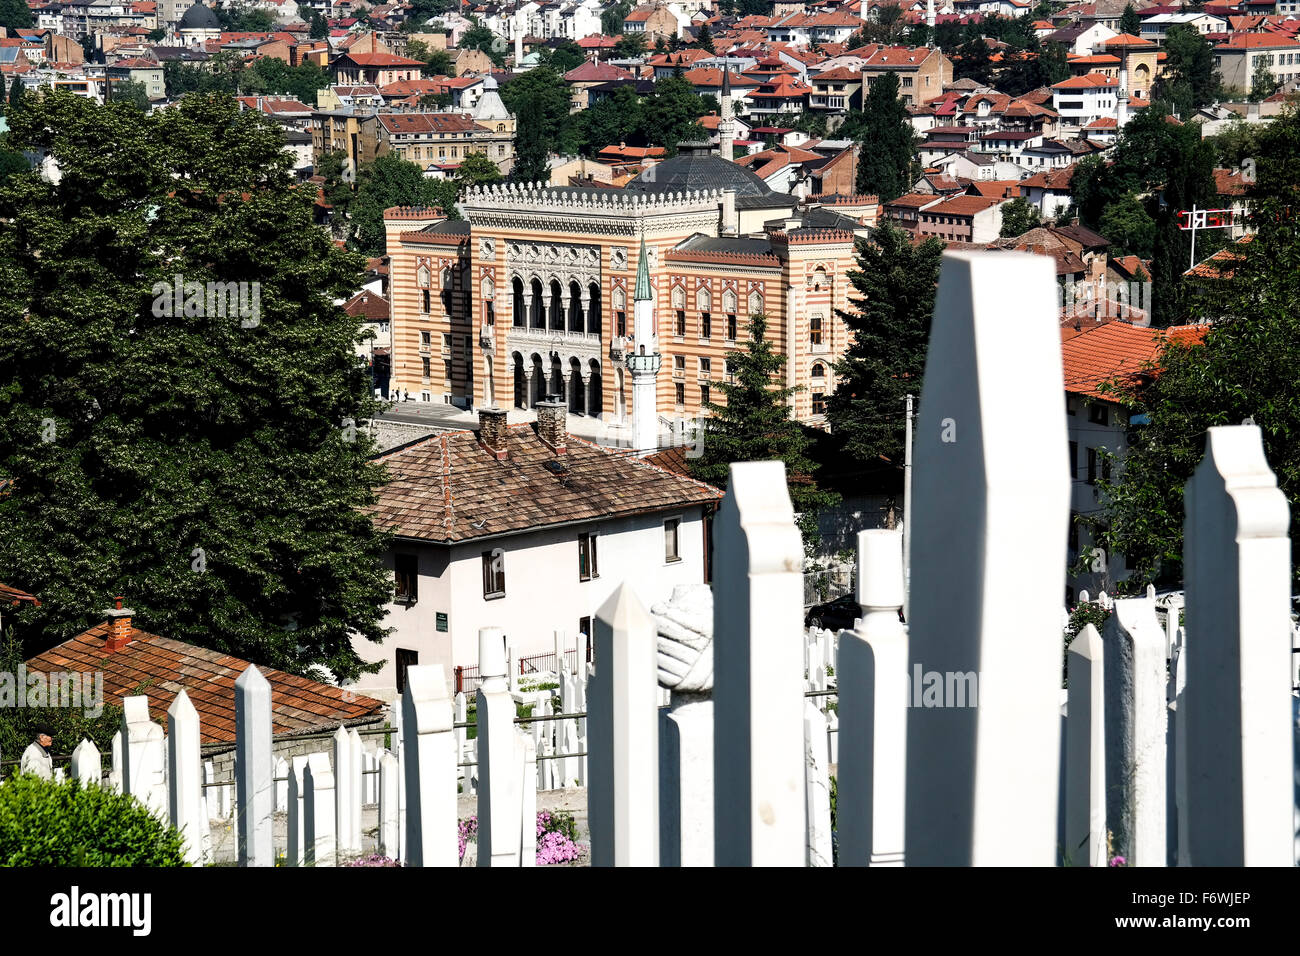 National Library of Bosnia and Herzegovina seen from Alifakovac. - Stock Image